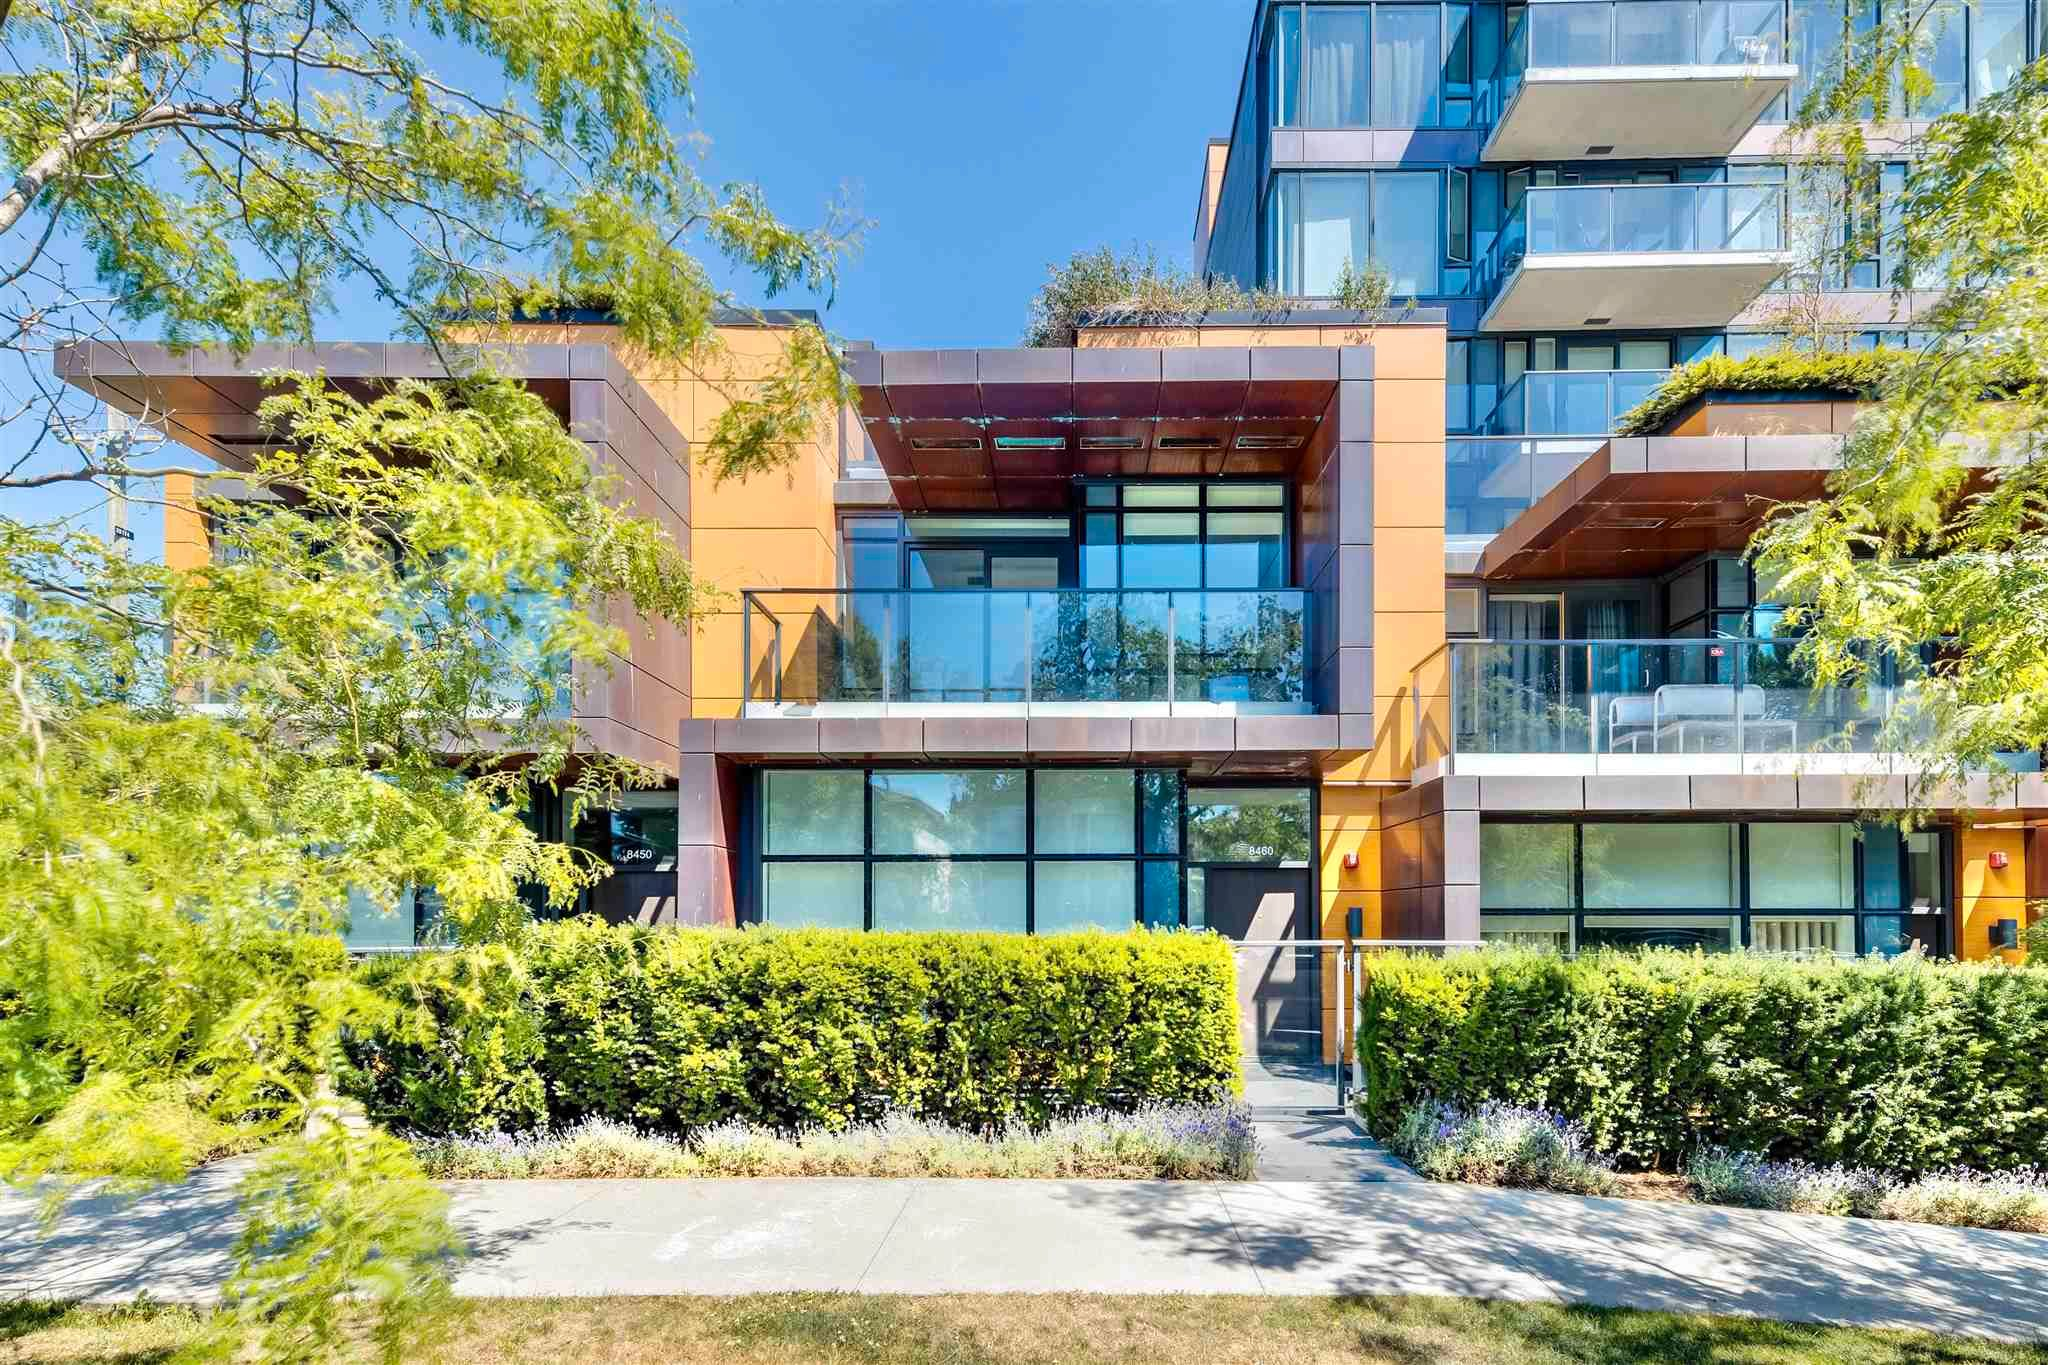 Main Photo: 8460 CORNISH STREET in Vancouver: S.W. Marine Townhouse for sale (Vancouver West)  : MLS®# R2621412